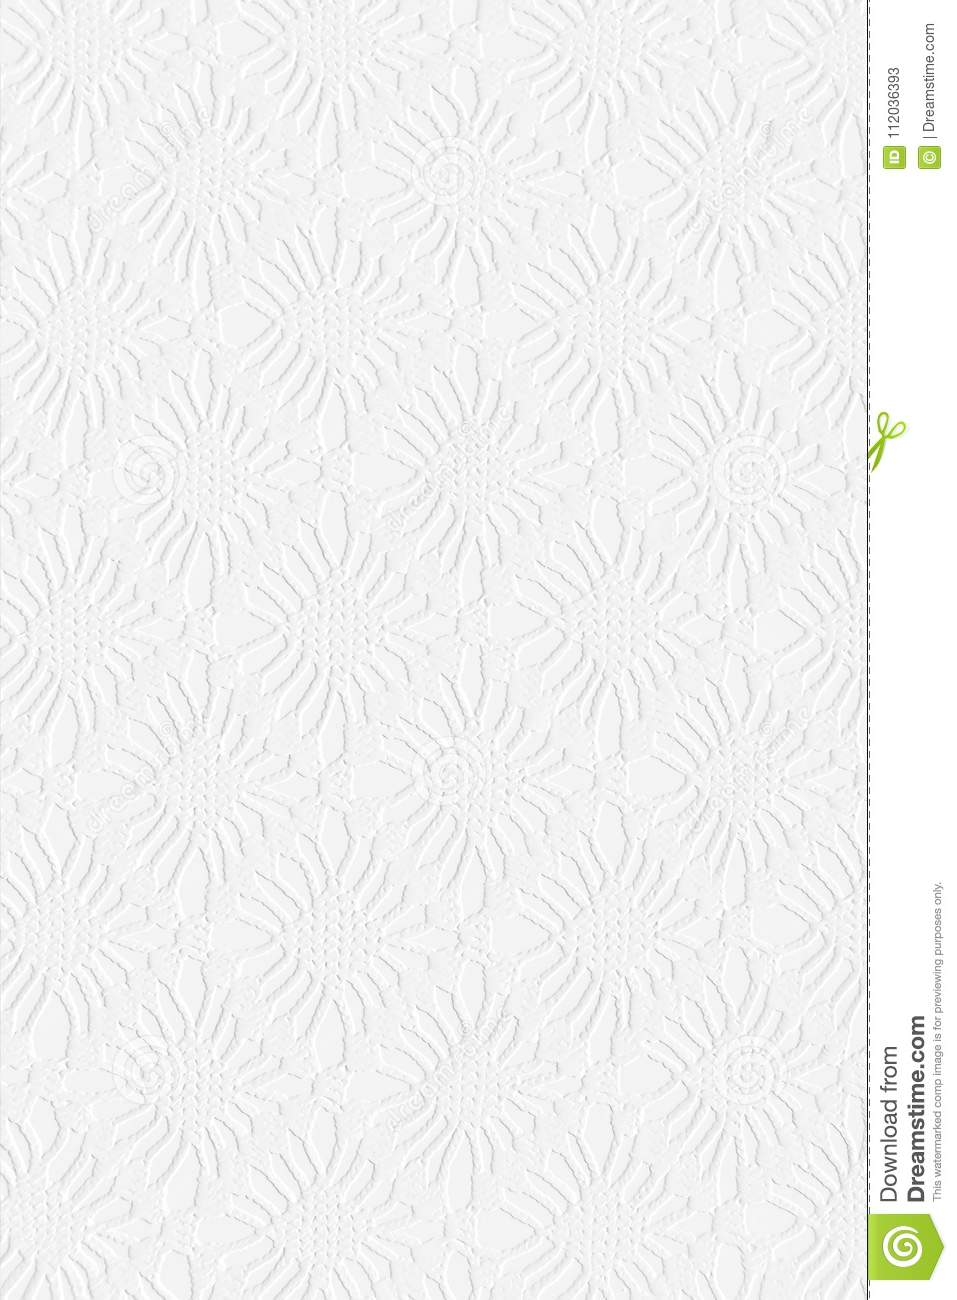 White Wallpaper Floral Squares Background Stock Image Image Of White Fabric 112036393